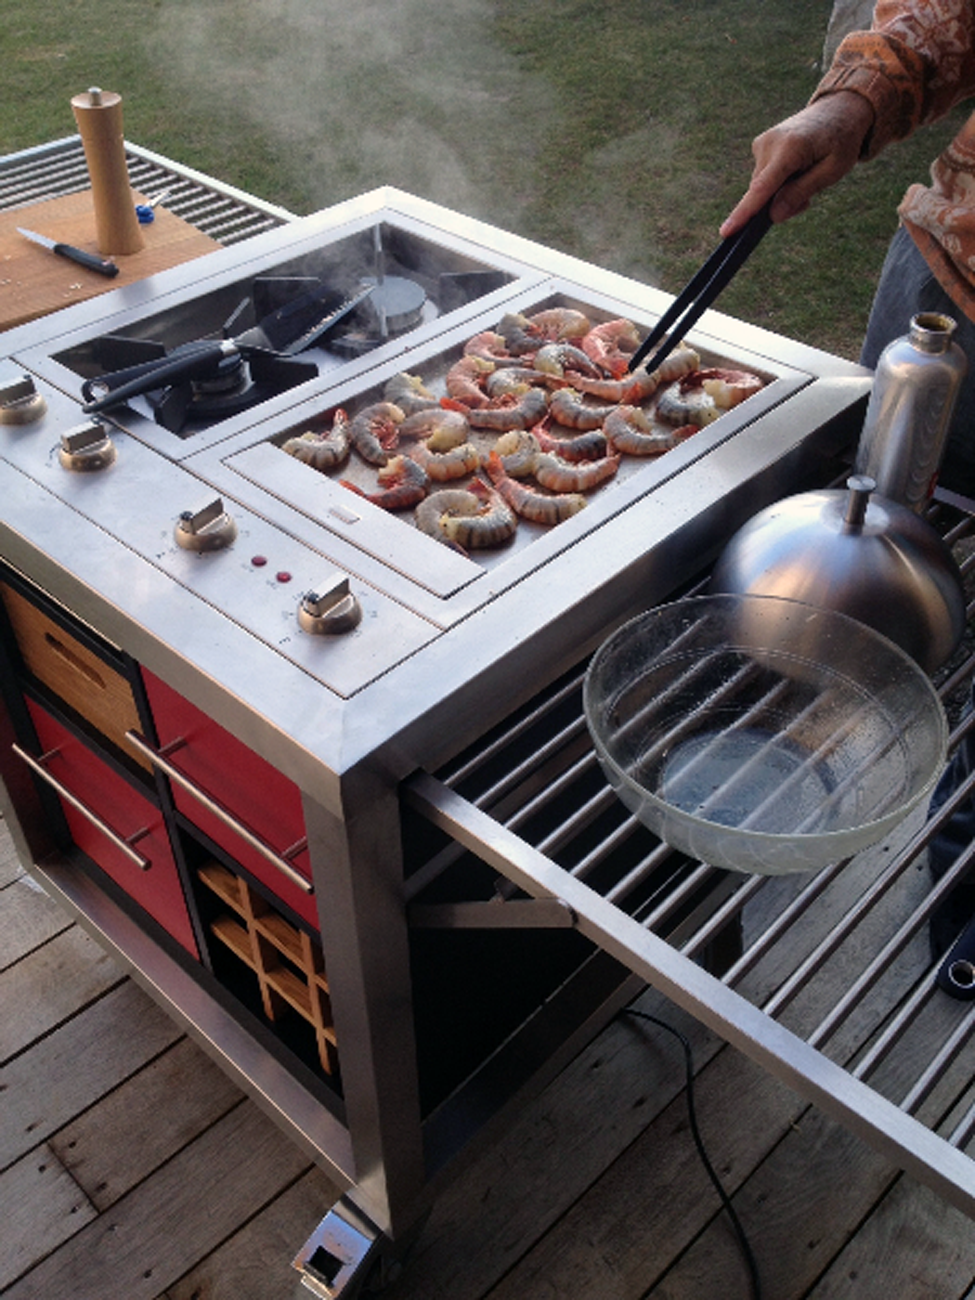 DesignApplause | Cuebe grill. Robust outdoor brands.